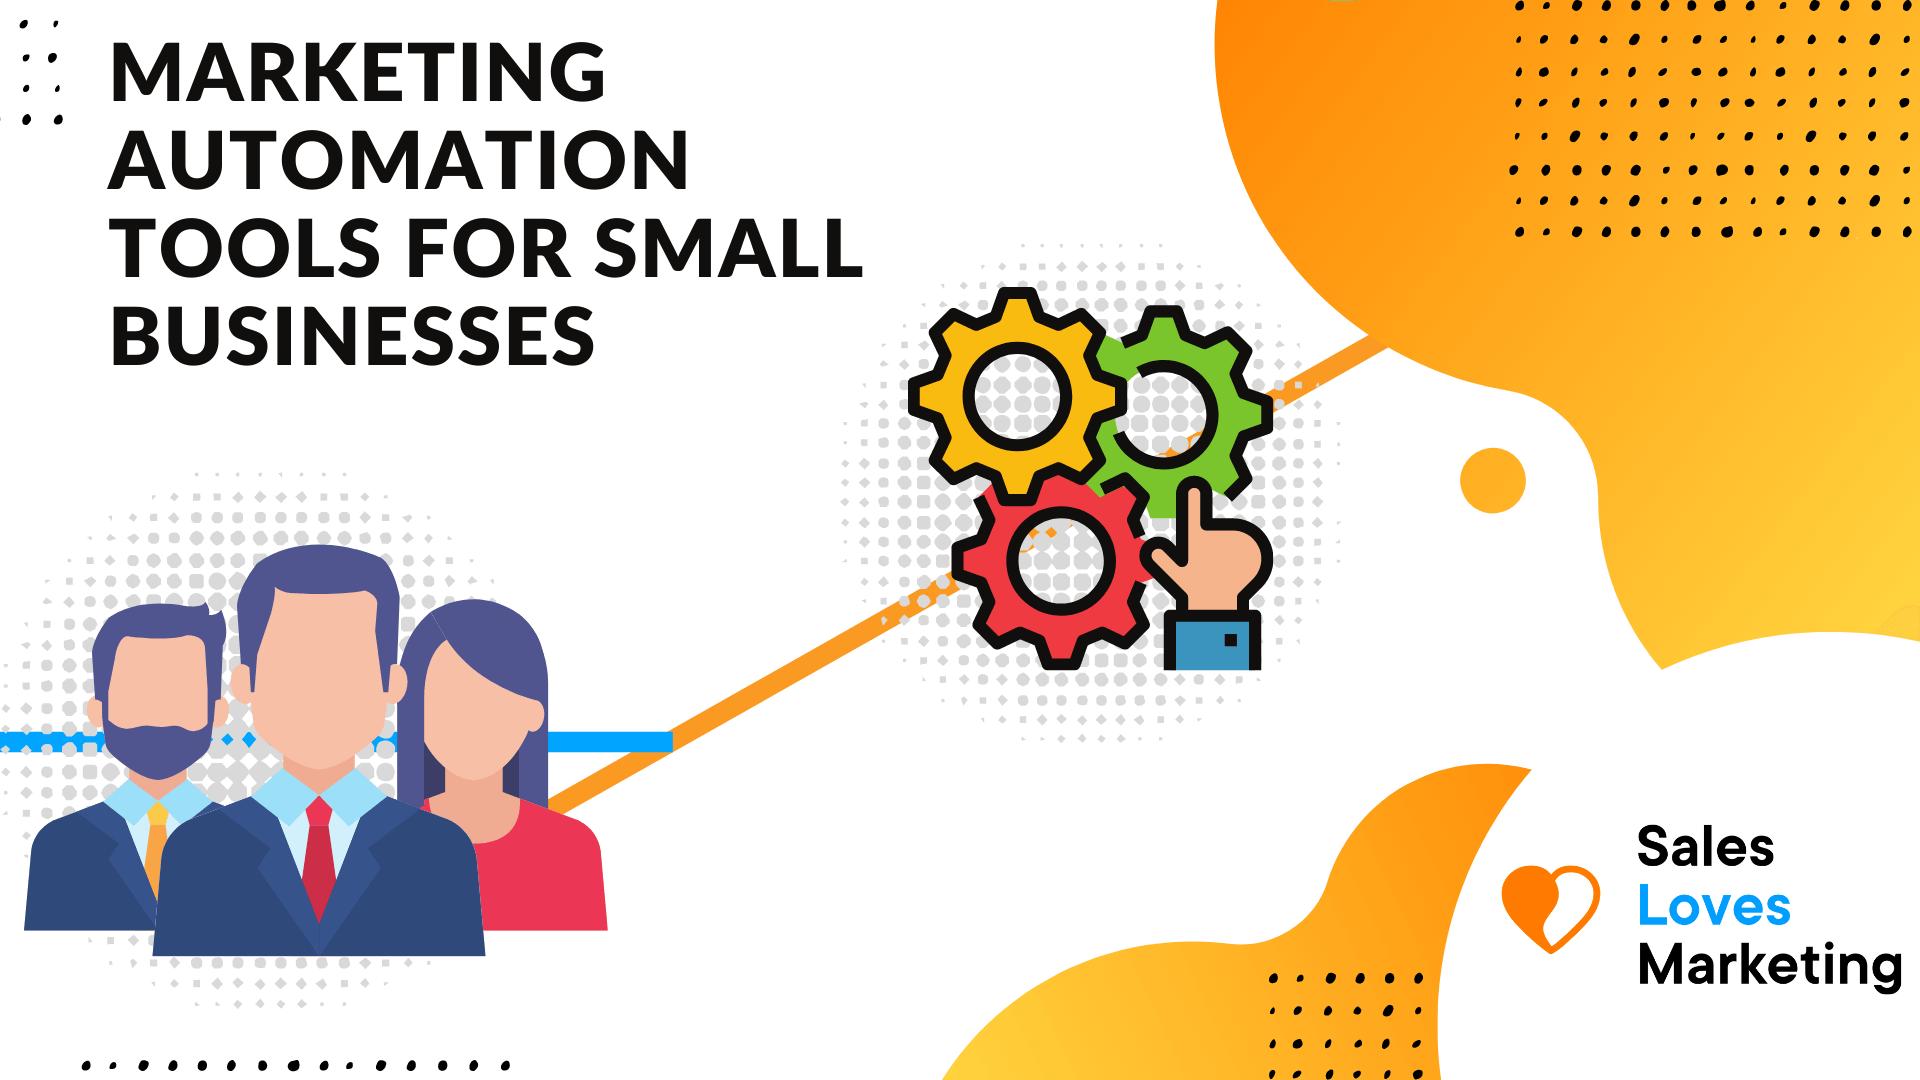 marketing automation tools for small businesses